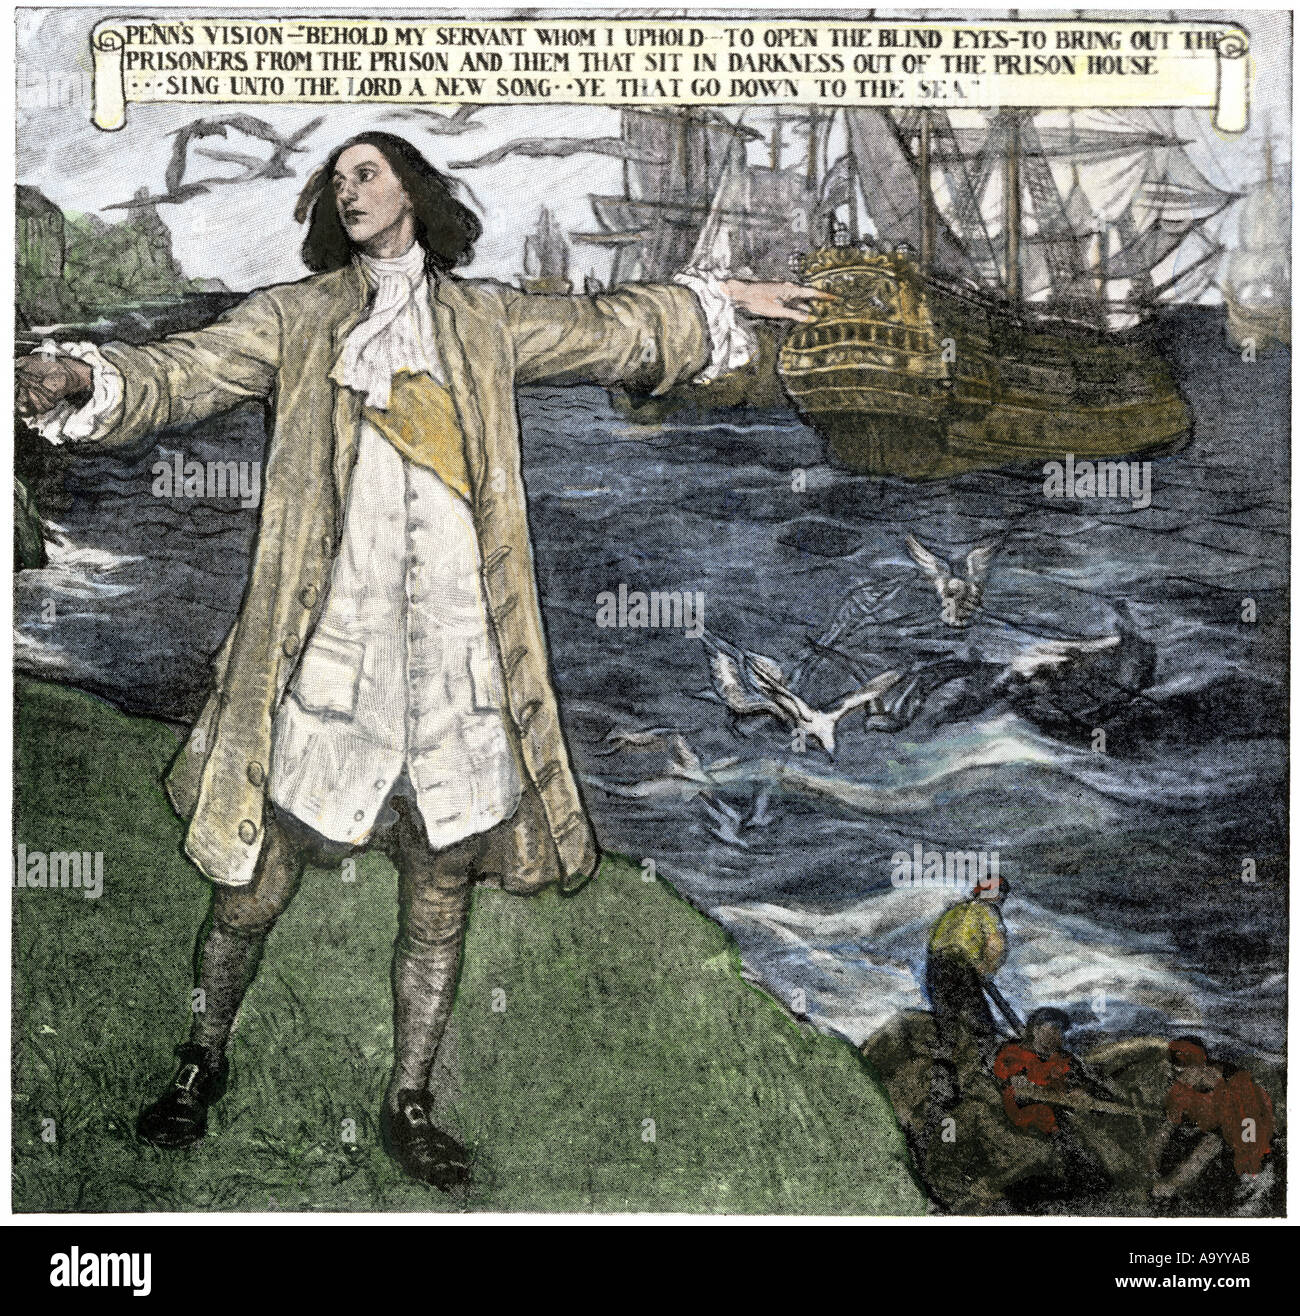 William Penn vision of ships liberating prisoners. Hand-colored halftone of an illustration - Stock Image